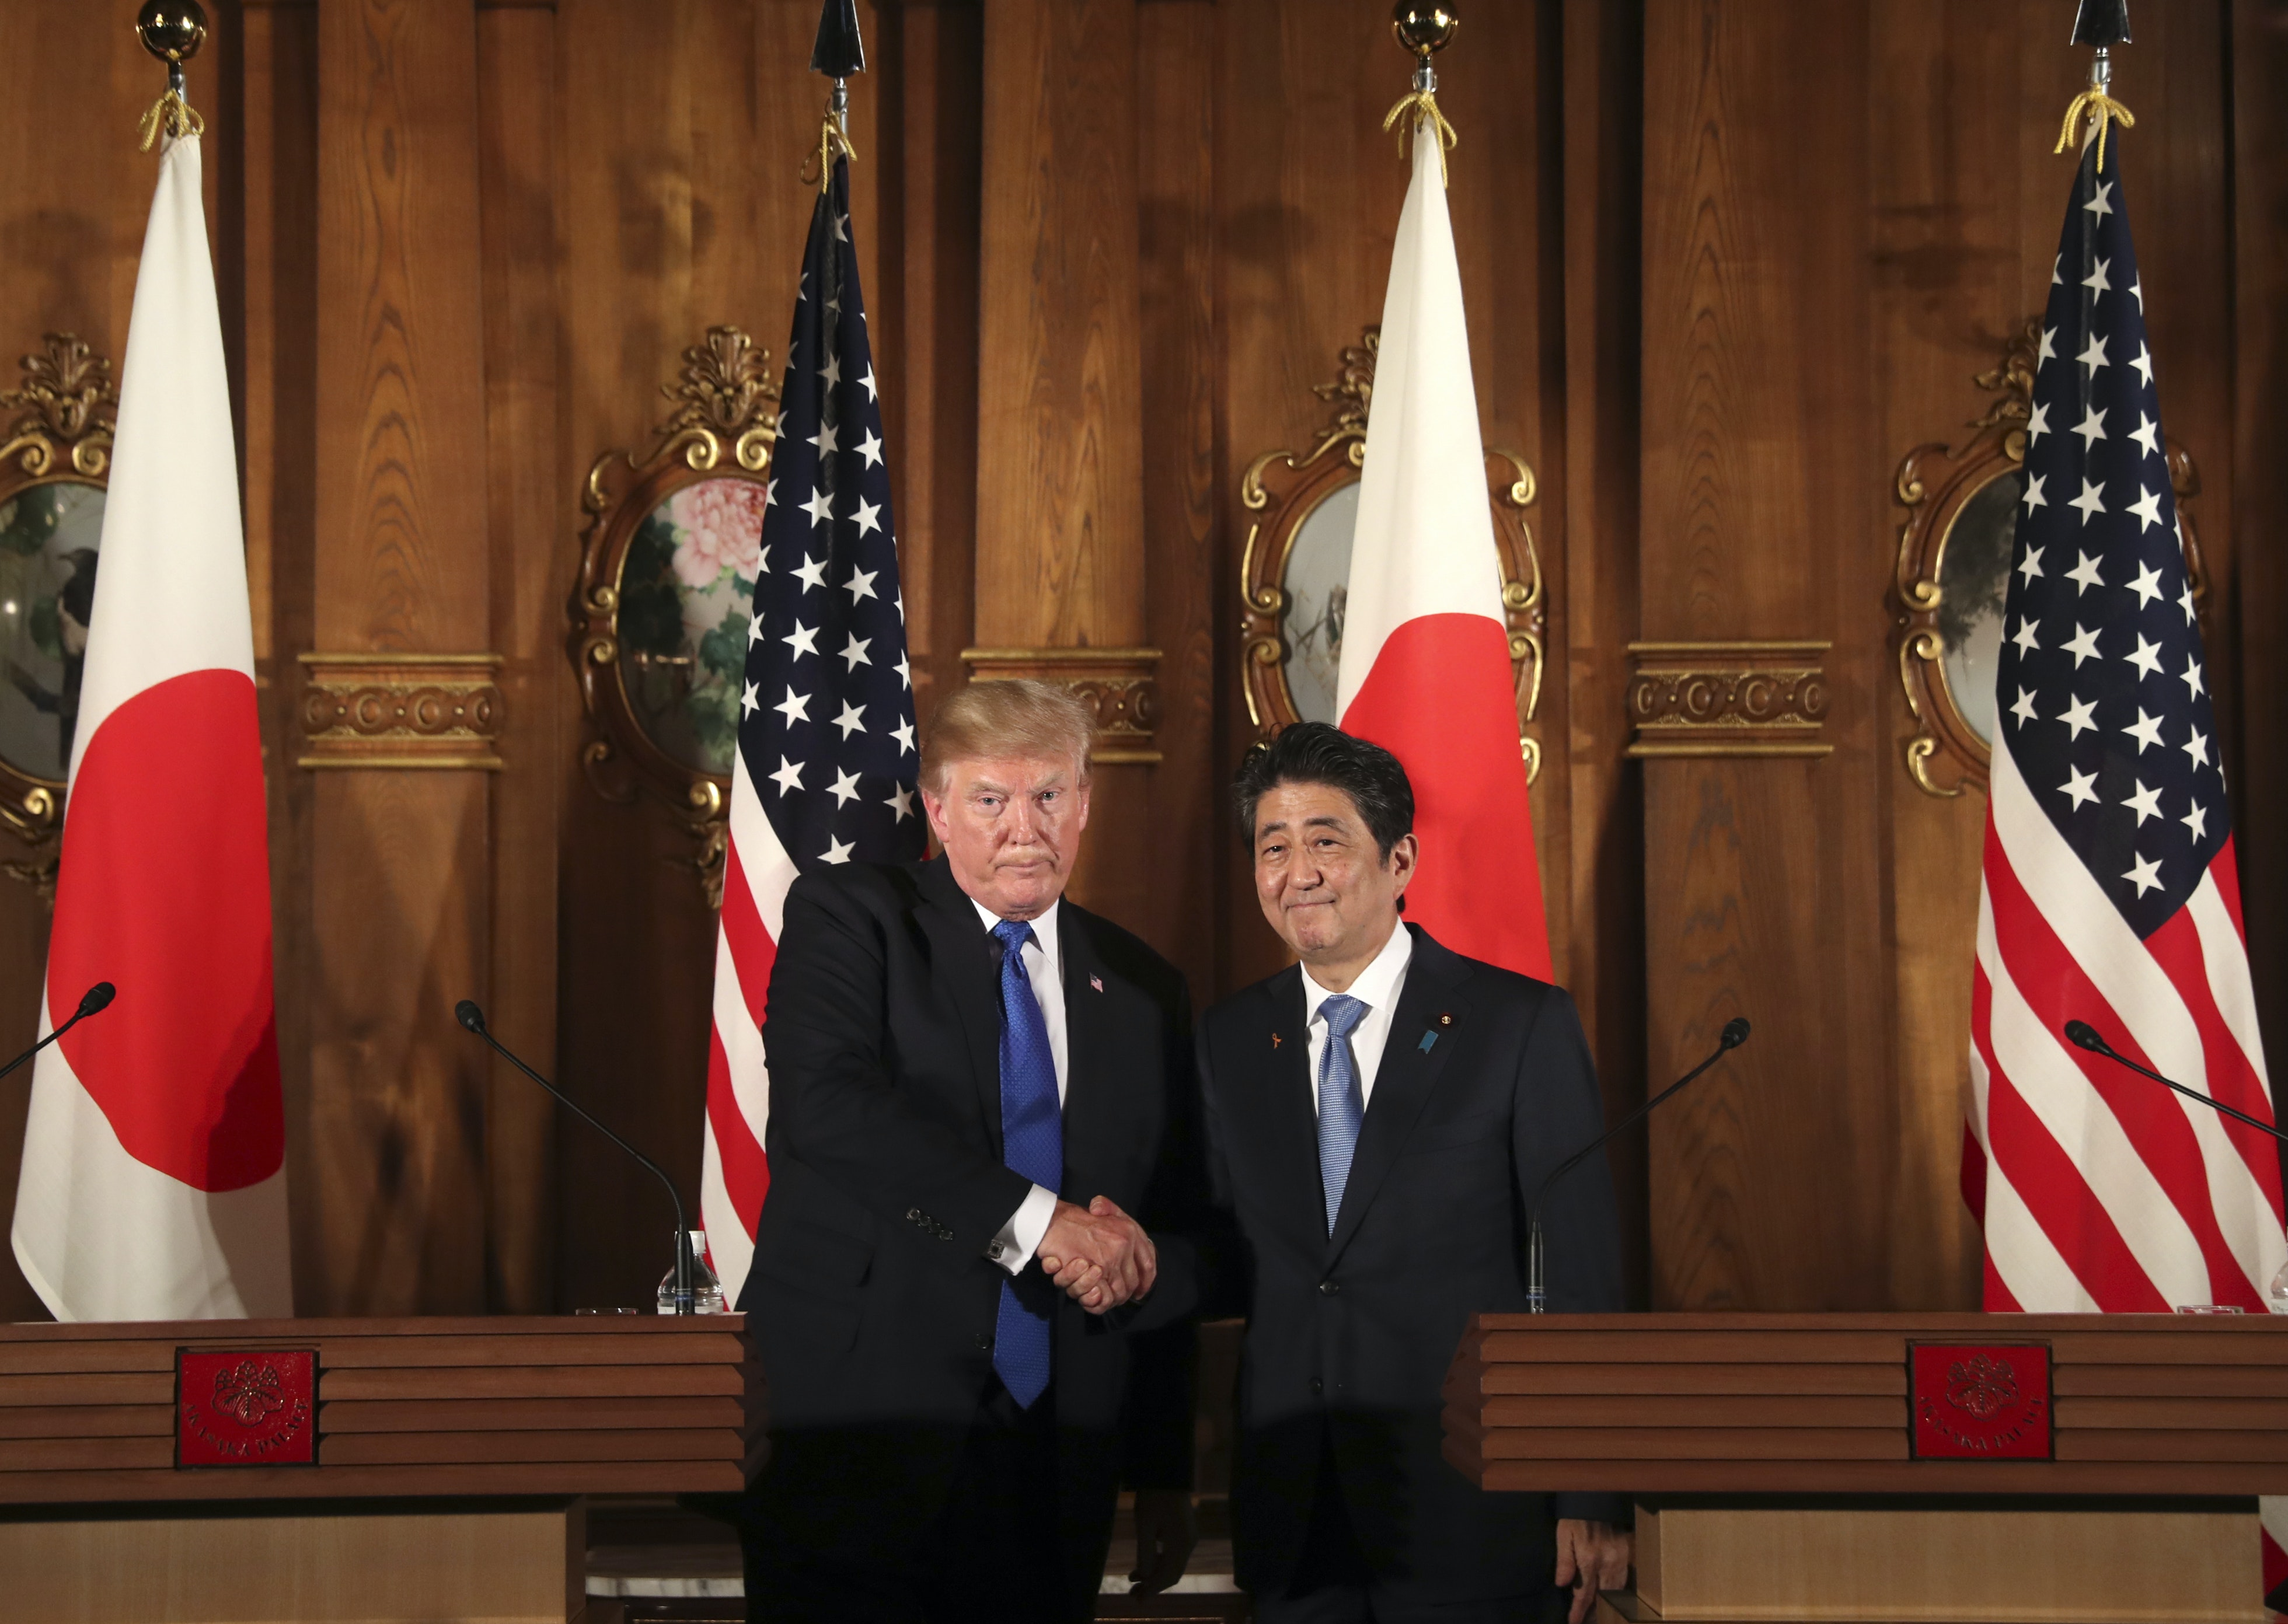 Will US-Japan friendship survive uncertainty in Asia?